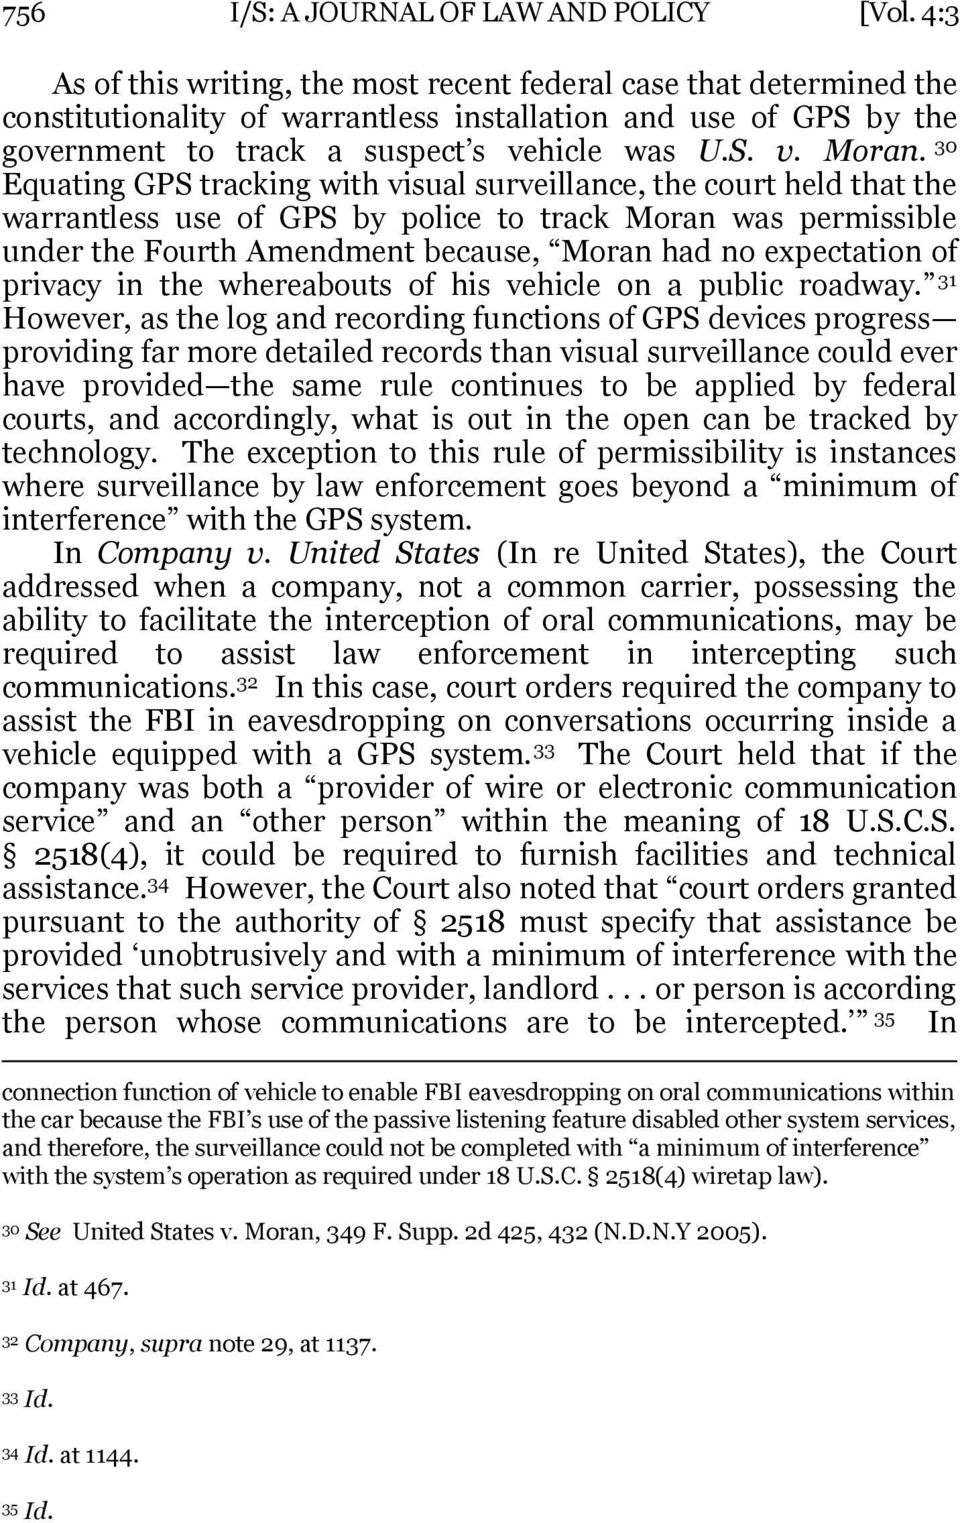 30 Equating GPS tracking with visual surveillance, the court held that the warrantless use of GPS by police to track Moran was permissible under the Fourth Amendment because, Moran had no expectation